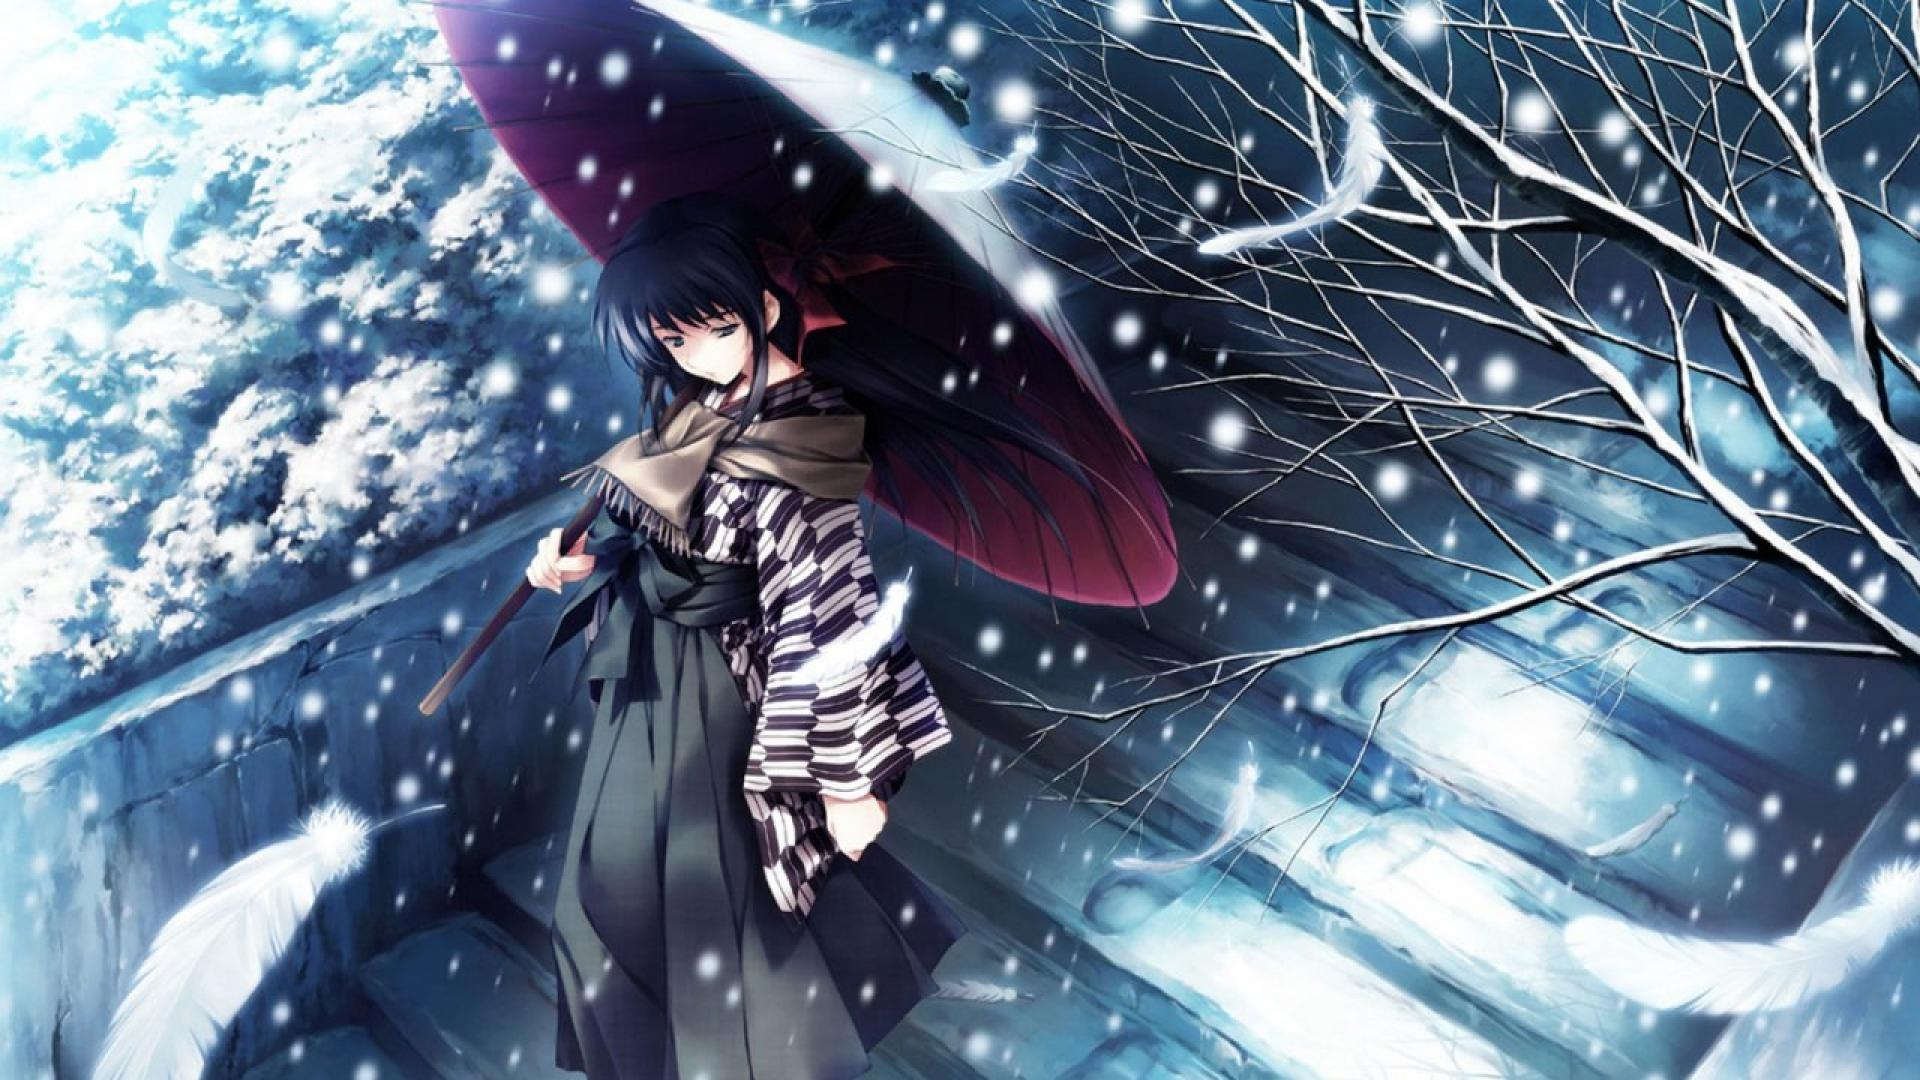 Girl Wallpaper Full Hd For Mobile Winter Girl Anime Wallpapers Hd Download Free Media